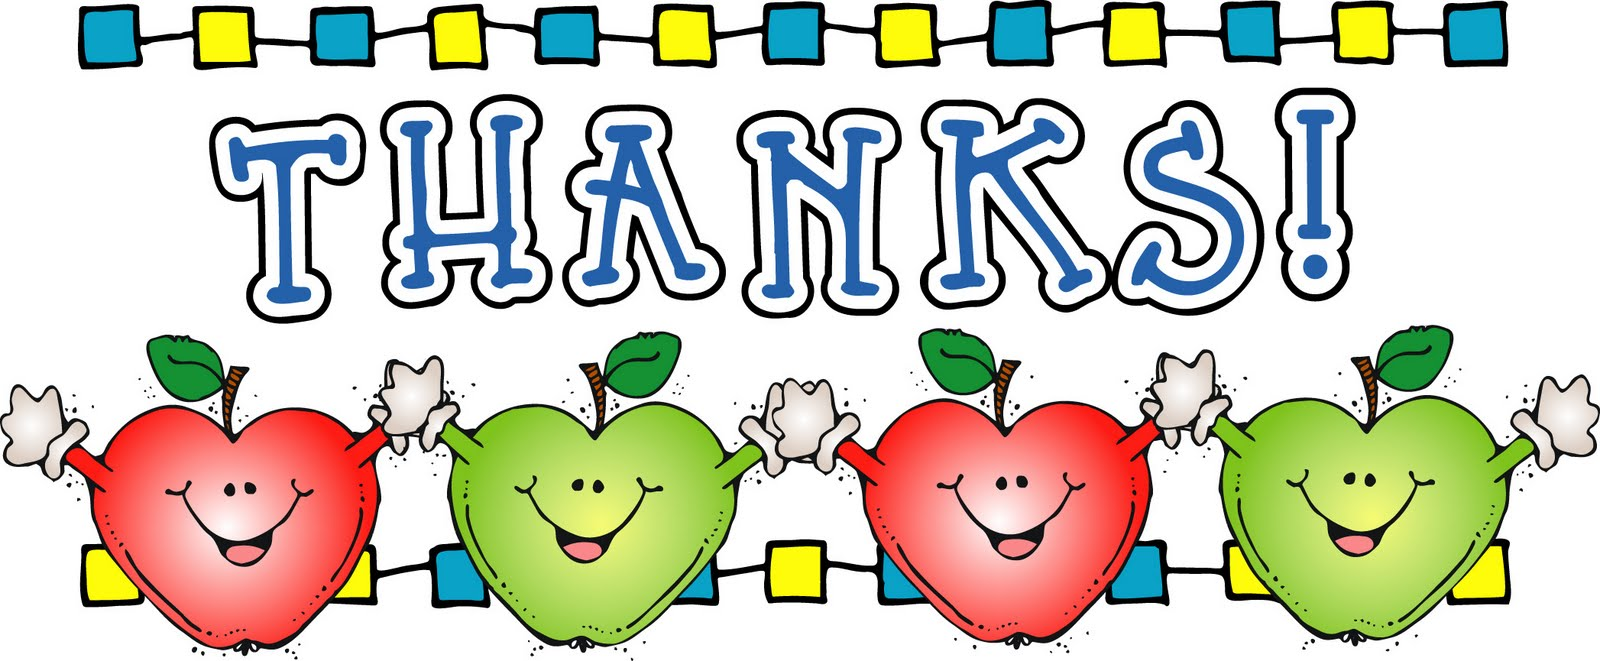 hight resolution of 1600x661 free christian thank you clipart images collection